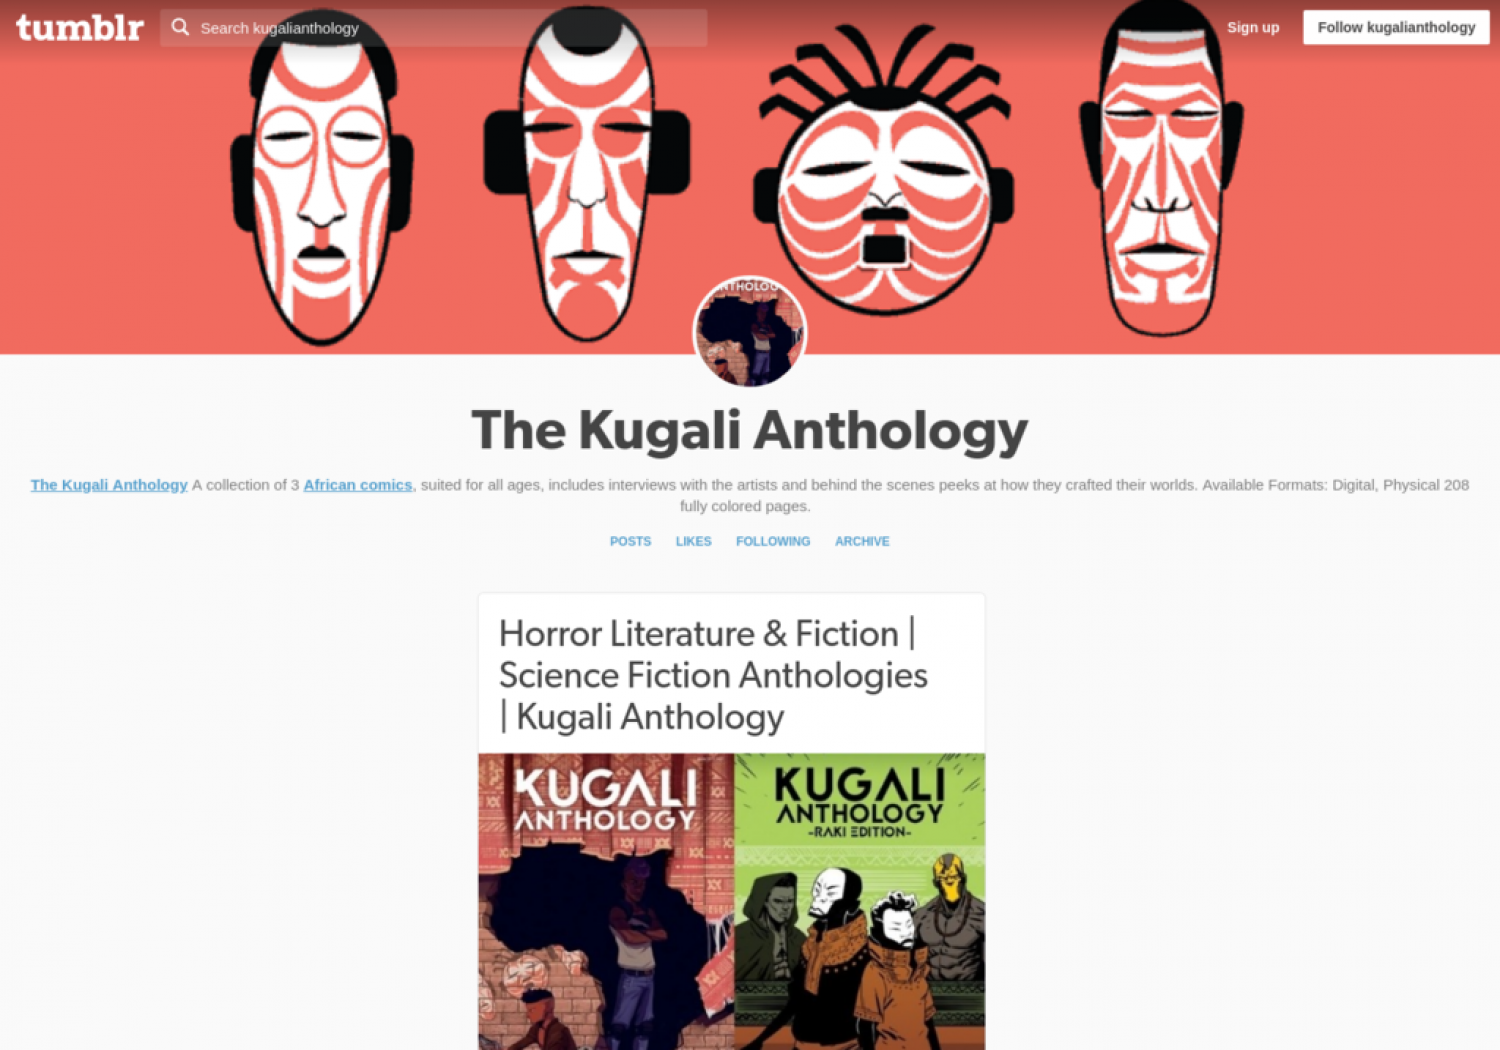 Horror Literature & Fiction | Science Fiction Anthologies | Kugali Anthology Infographic